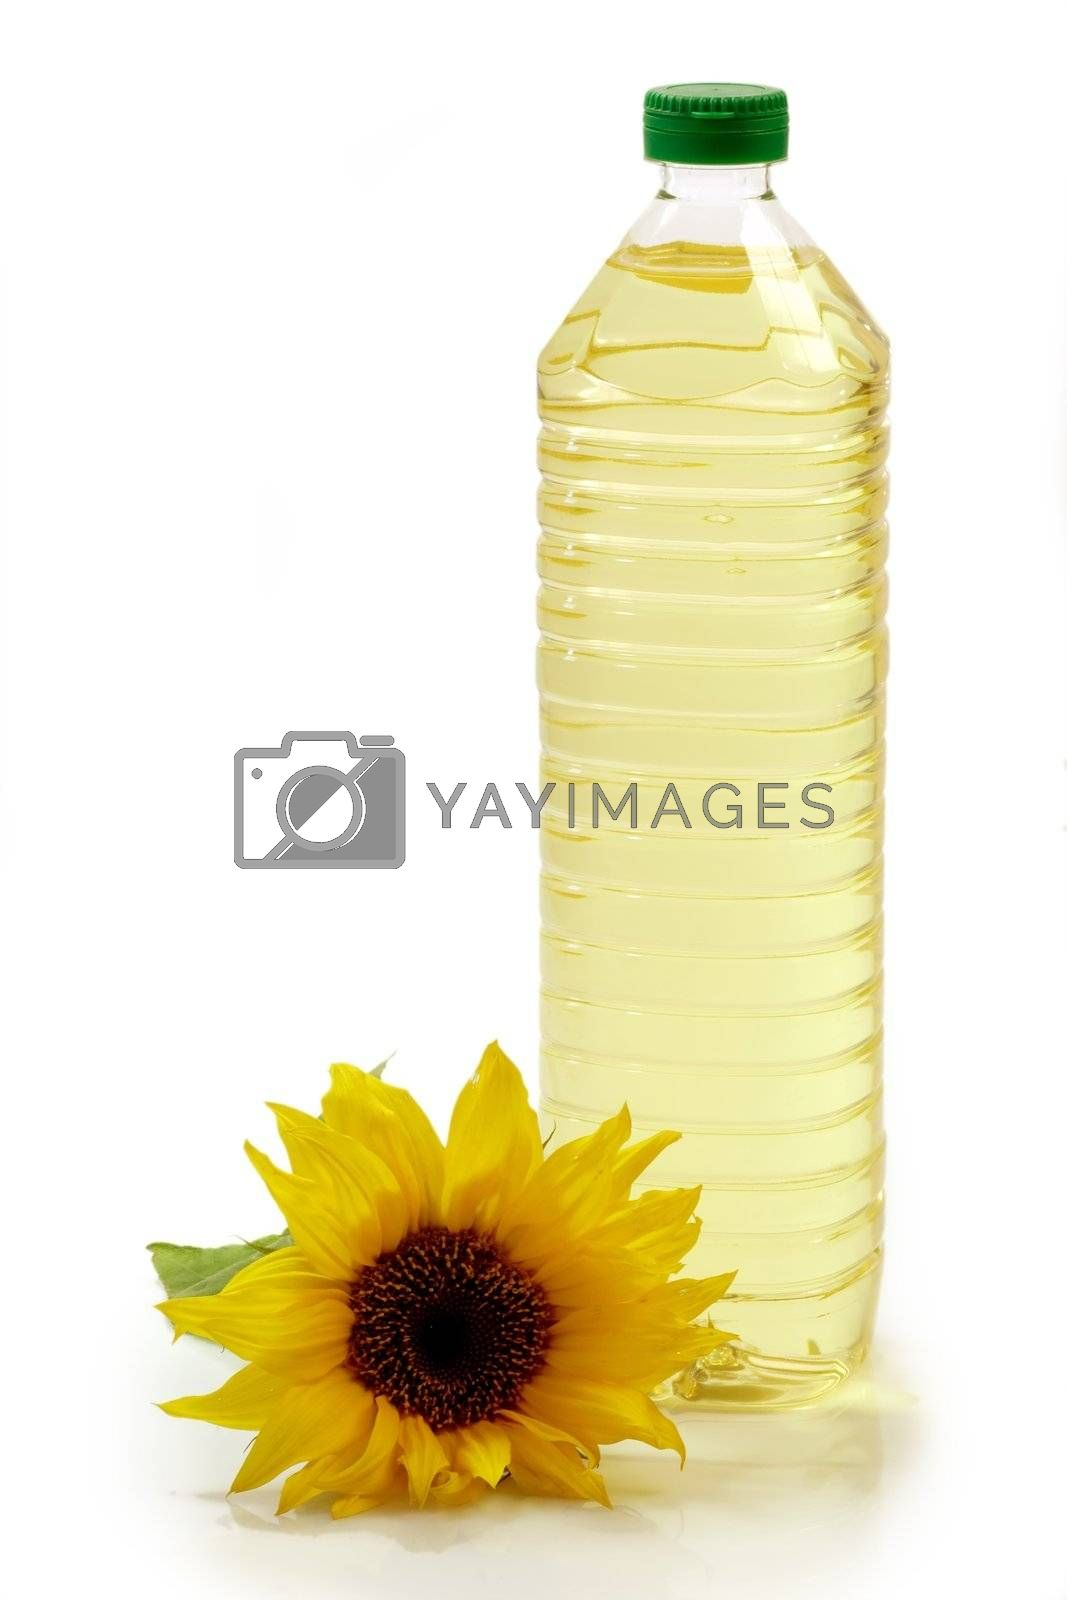 Cooking oil in a plastic bottle with sunflower on white background